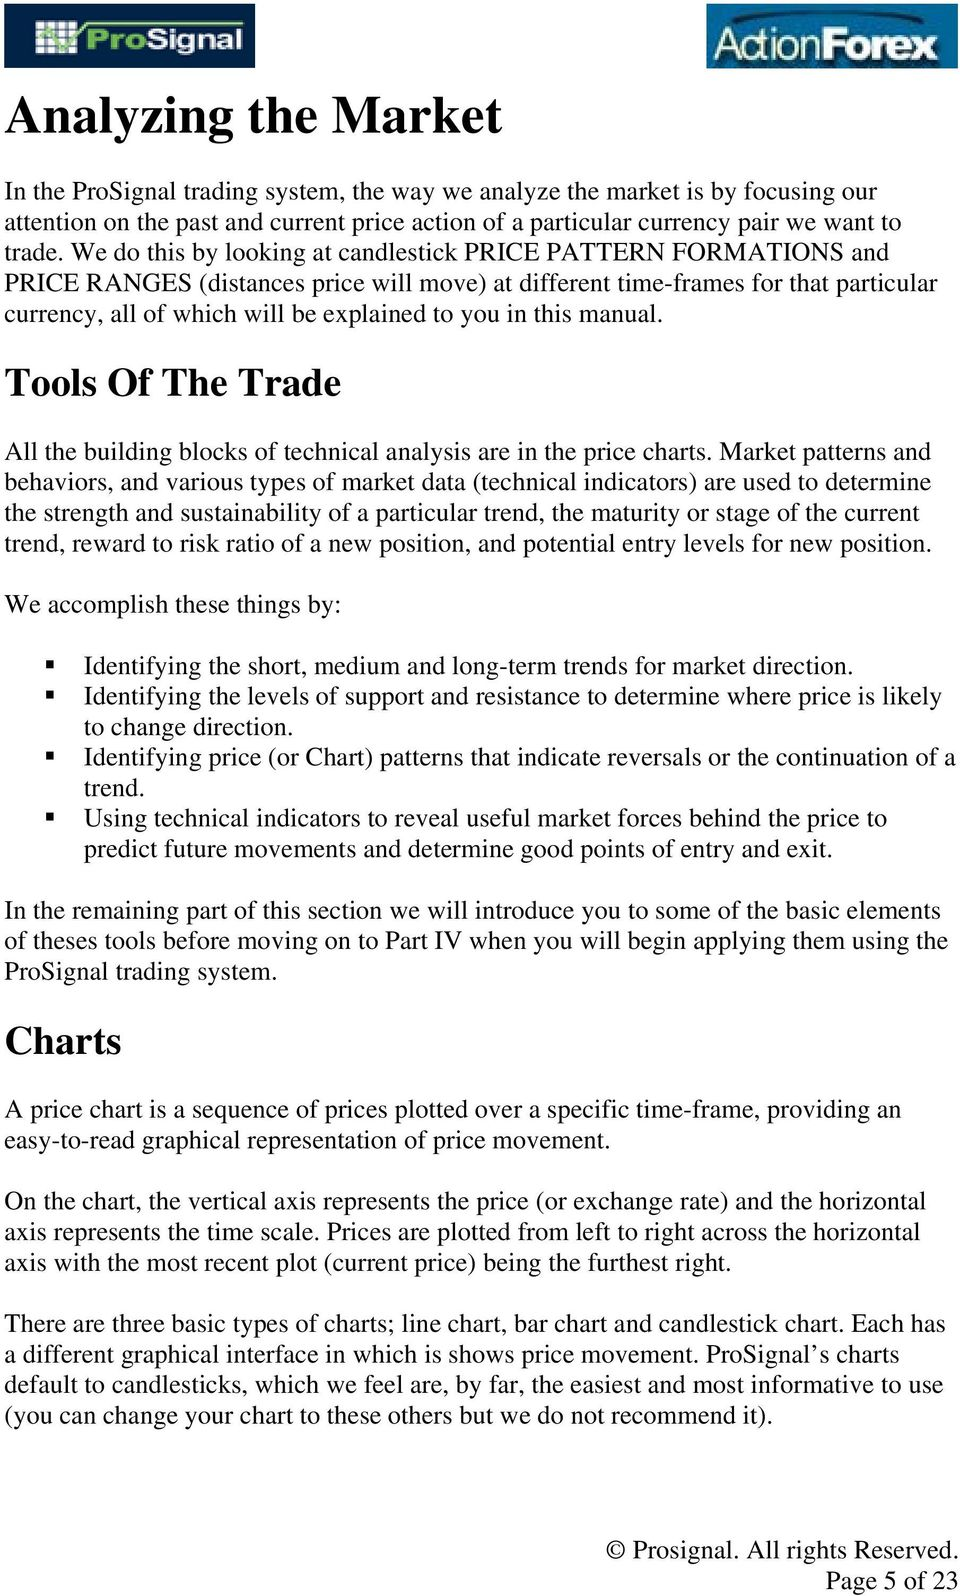 A Primer On Technical Analysis  Written by  Available at - PDF